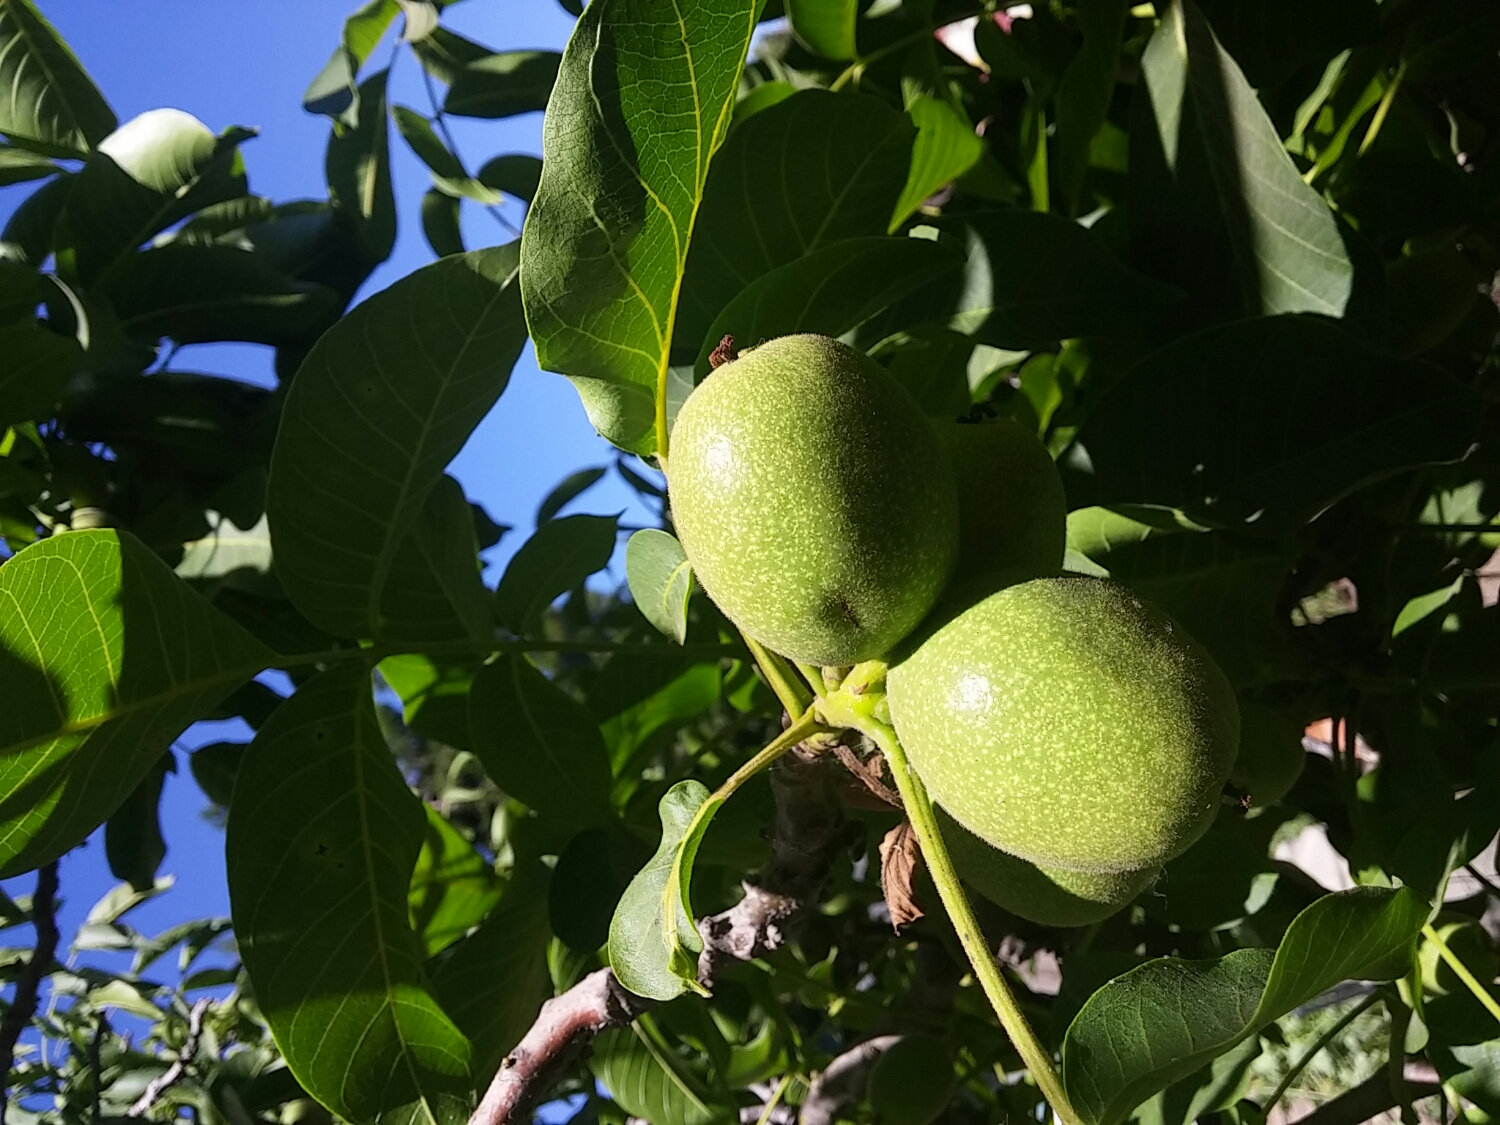 Walnut fruit on tree.